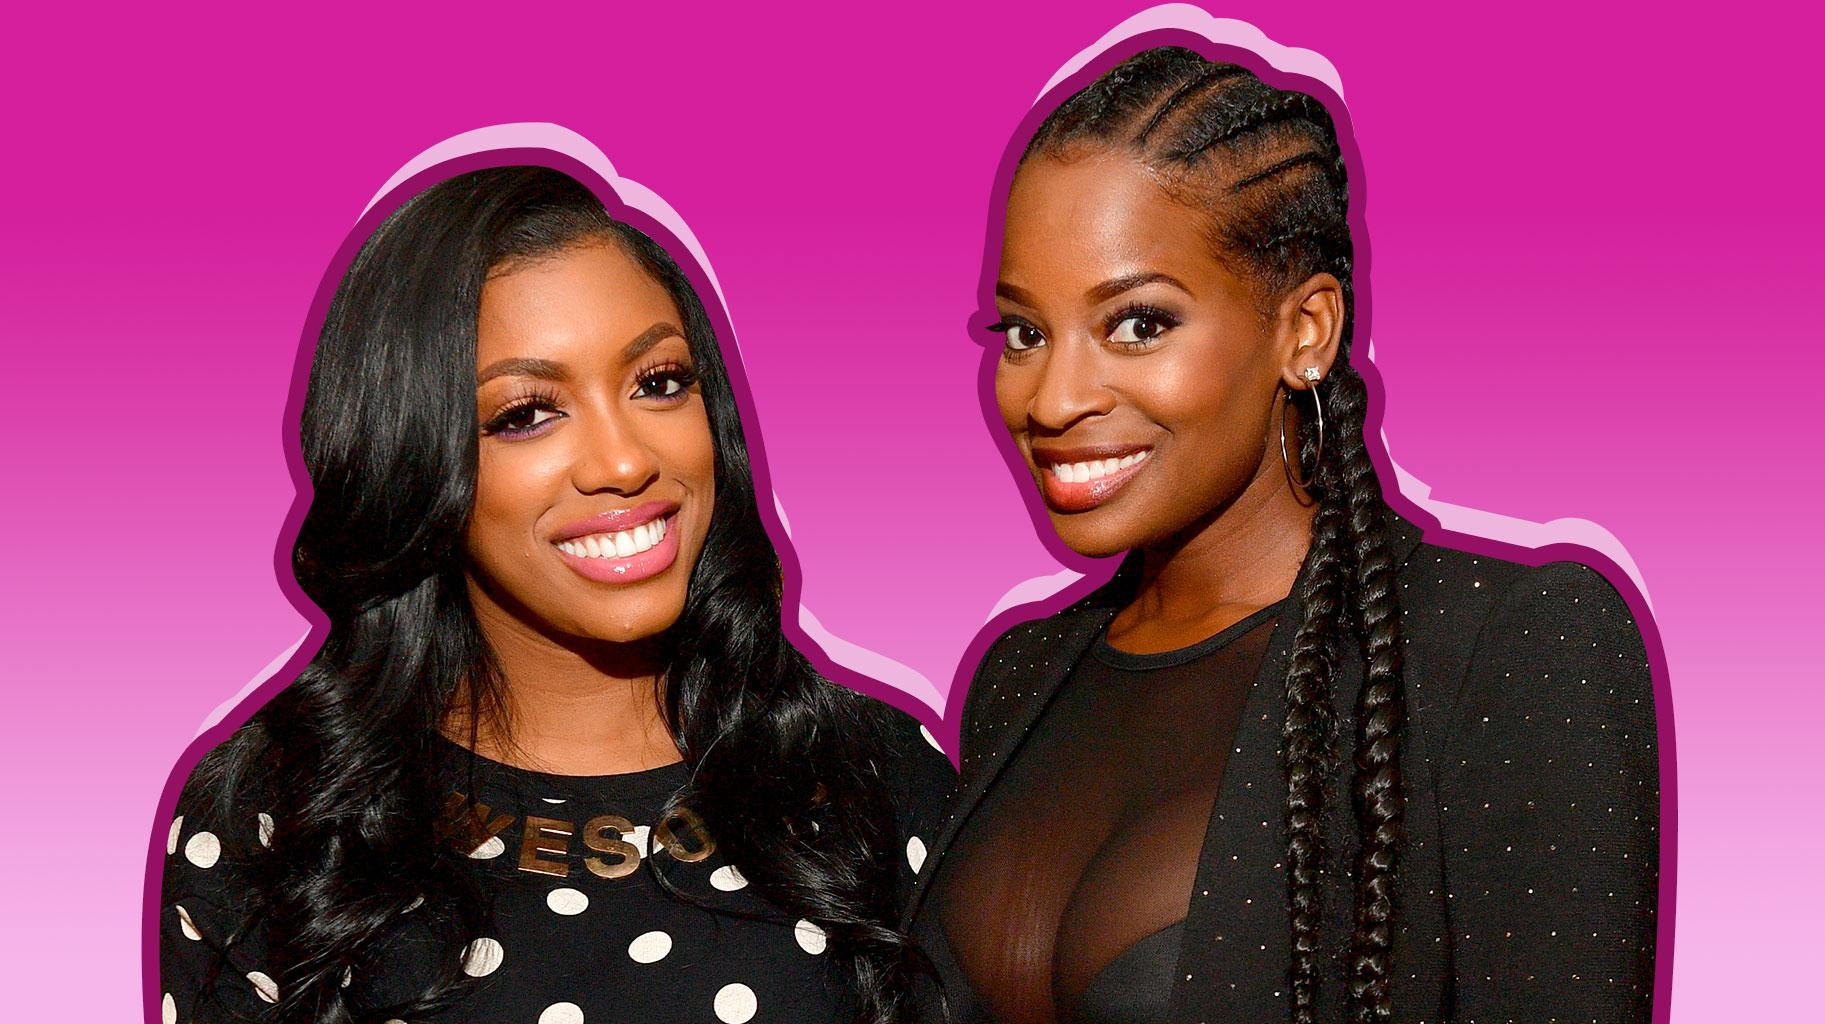 Porsha Williams Remembers The Good Times With Shamea Morton - Check Out The Throwback Photo She Shared